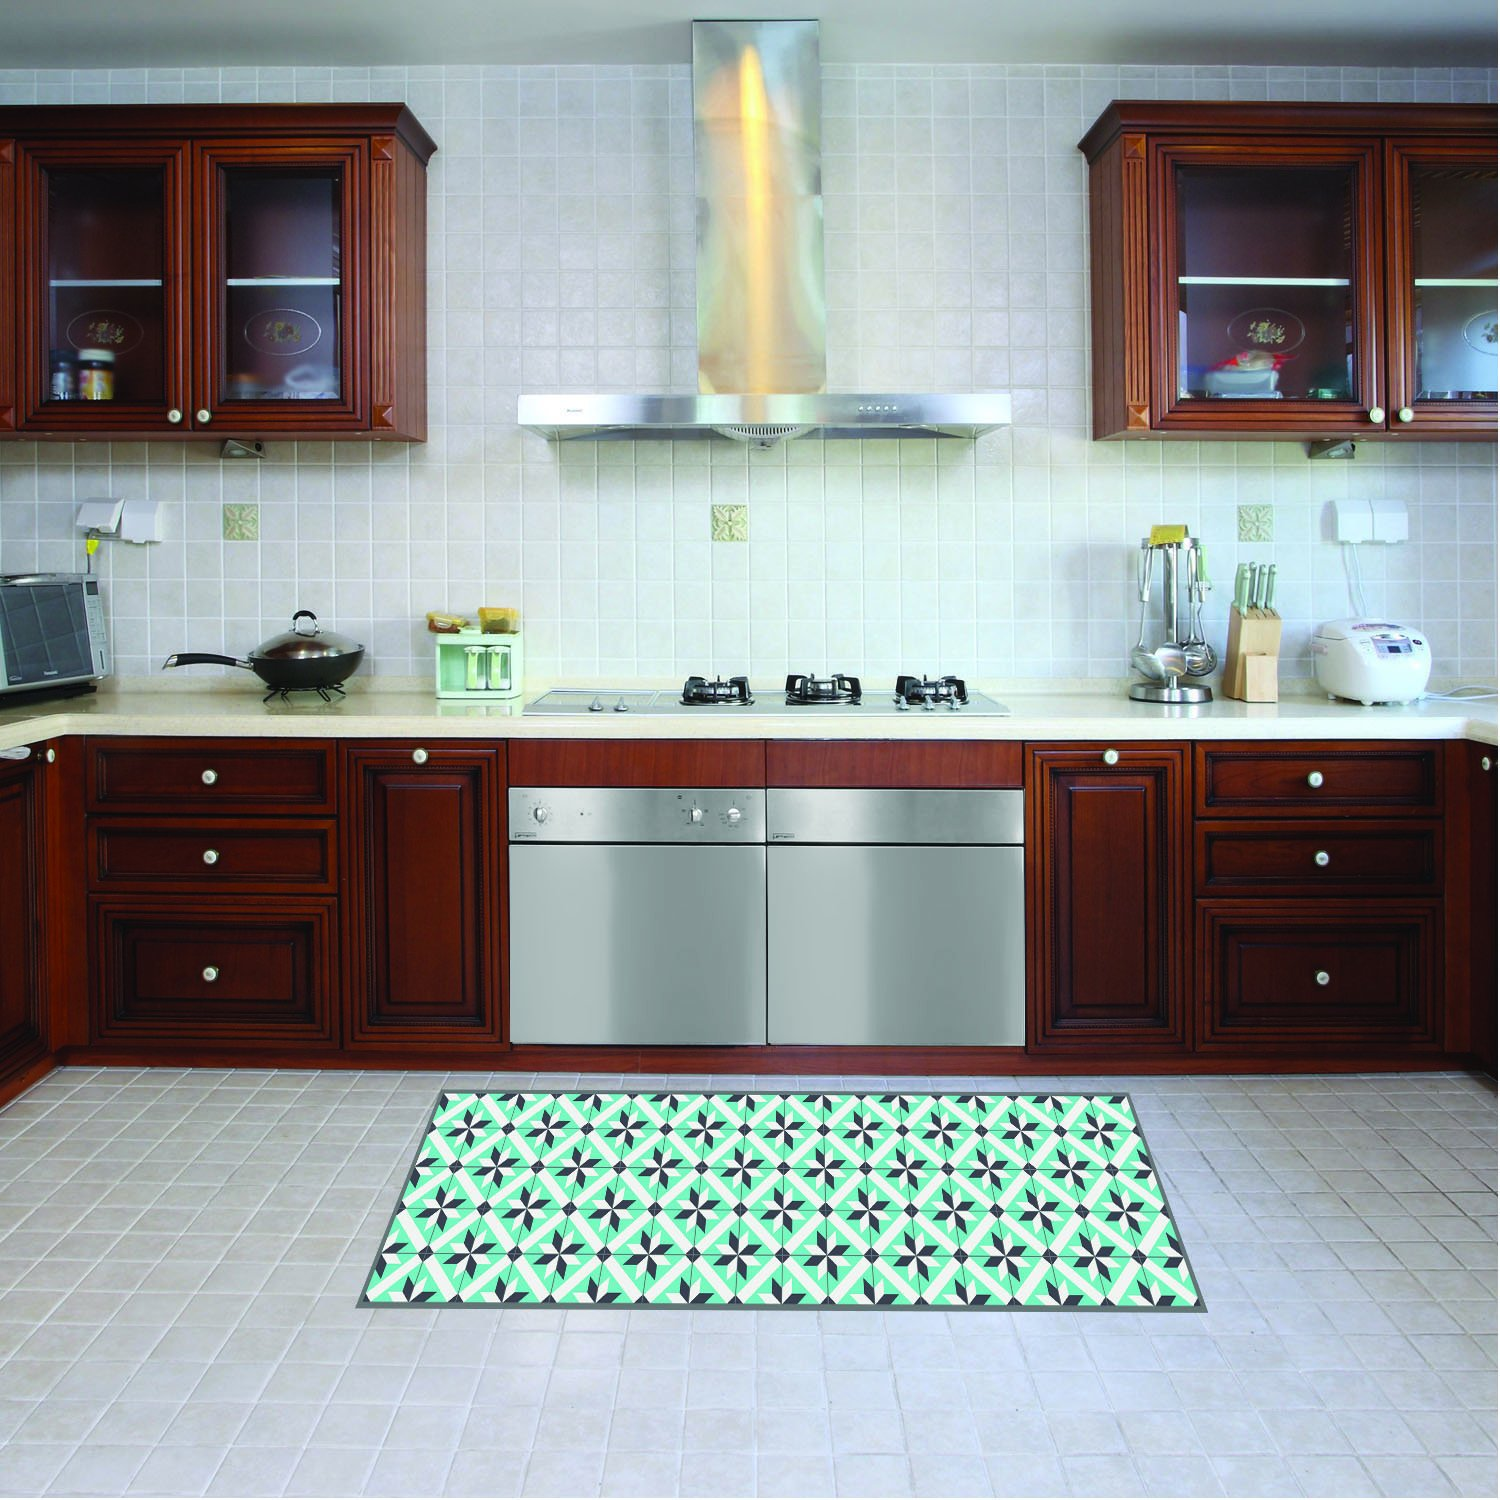 Kitchen runner machine washable rug 52cm x 280 cm anti mite mat